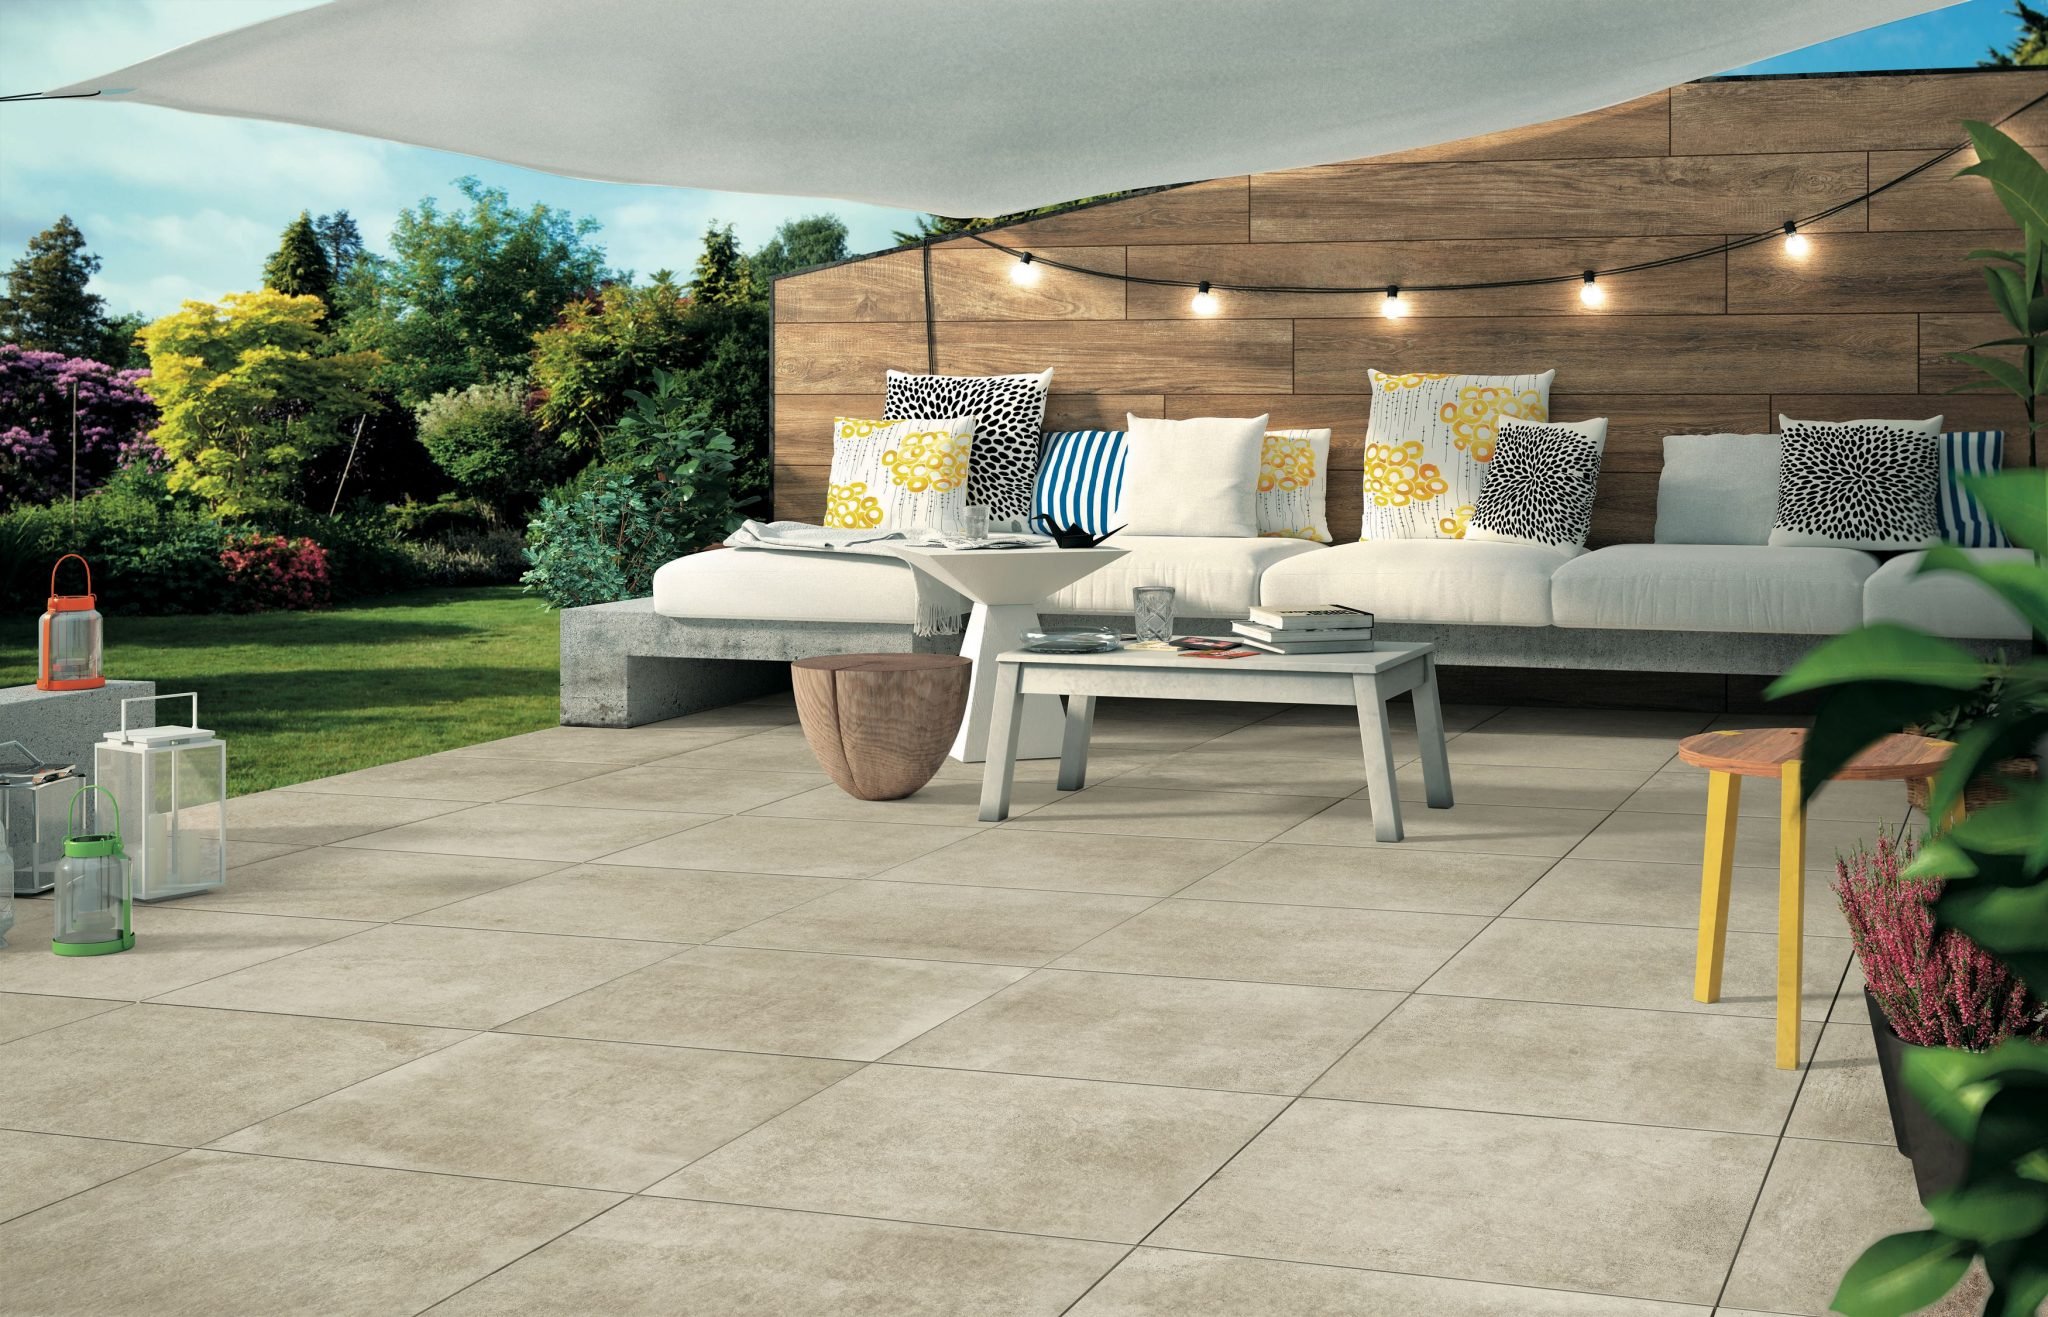 Shade Sails Lower Surface Temperature of Hardscapes and Softscapes